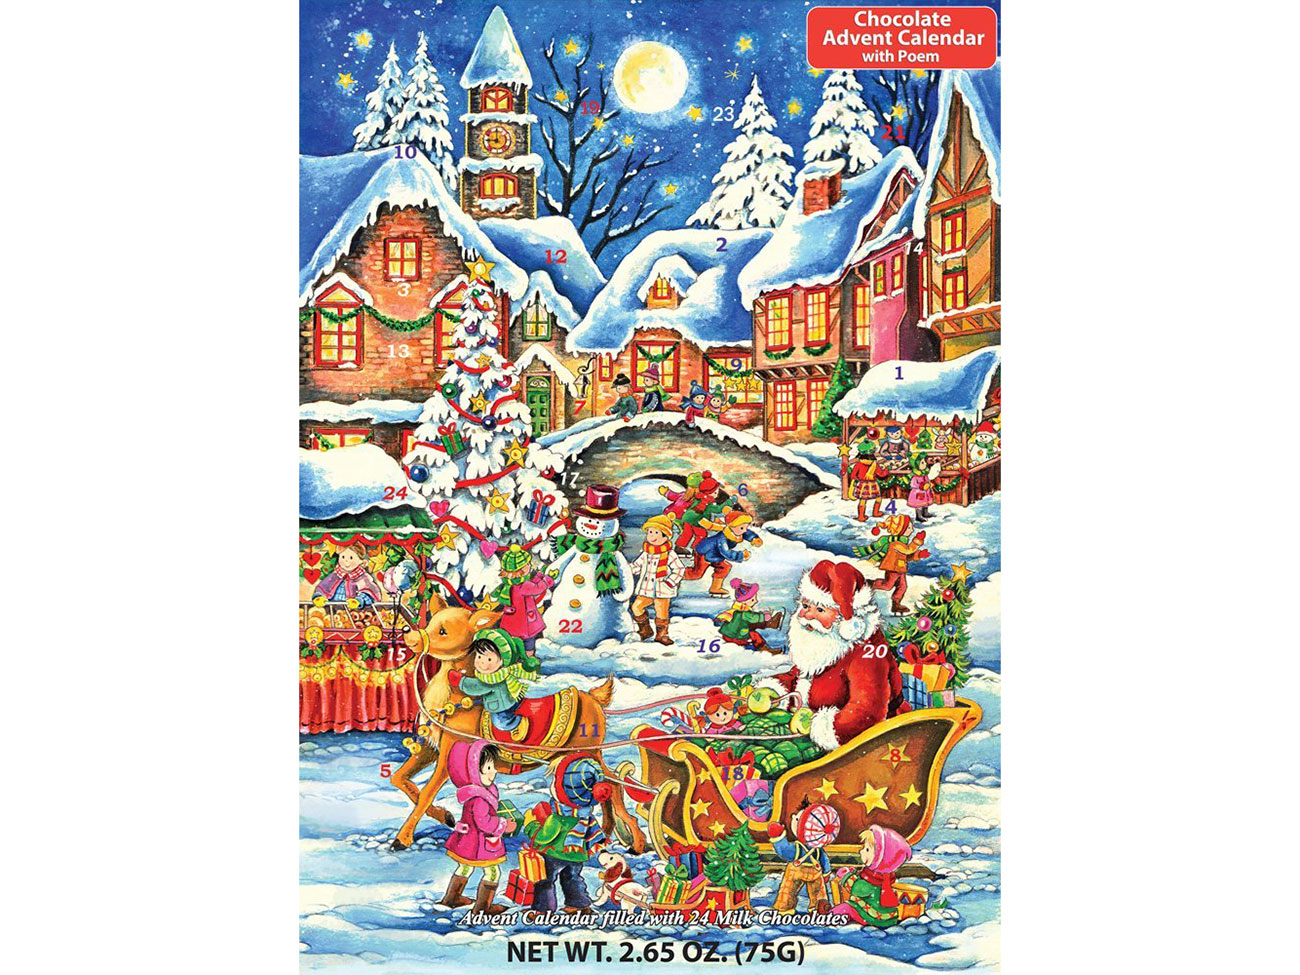 12 food drink advent calendars counting down to a delicious chocolate advent calendar solutioingenieria Choice Image